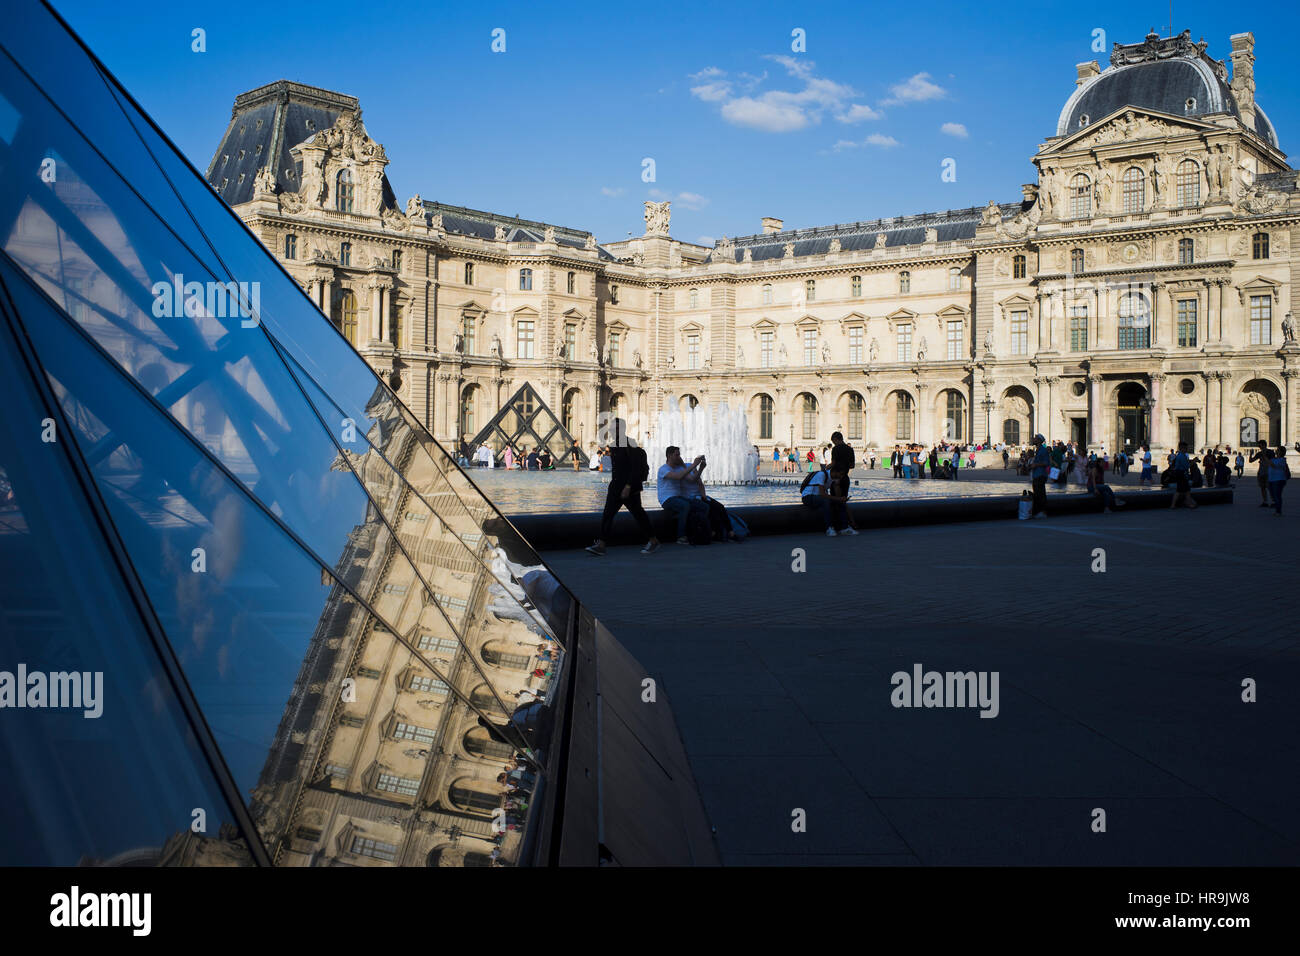 Louvre Pyramid mirroring the architecture - Stock Image